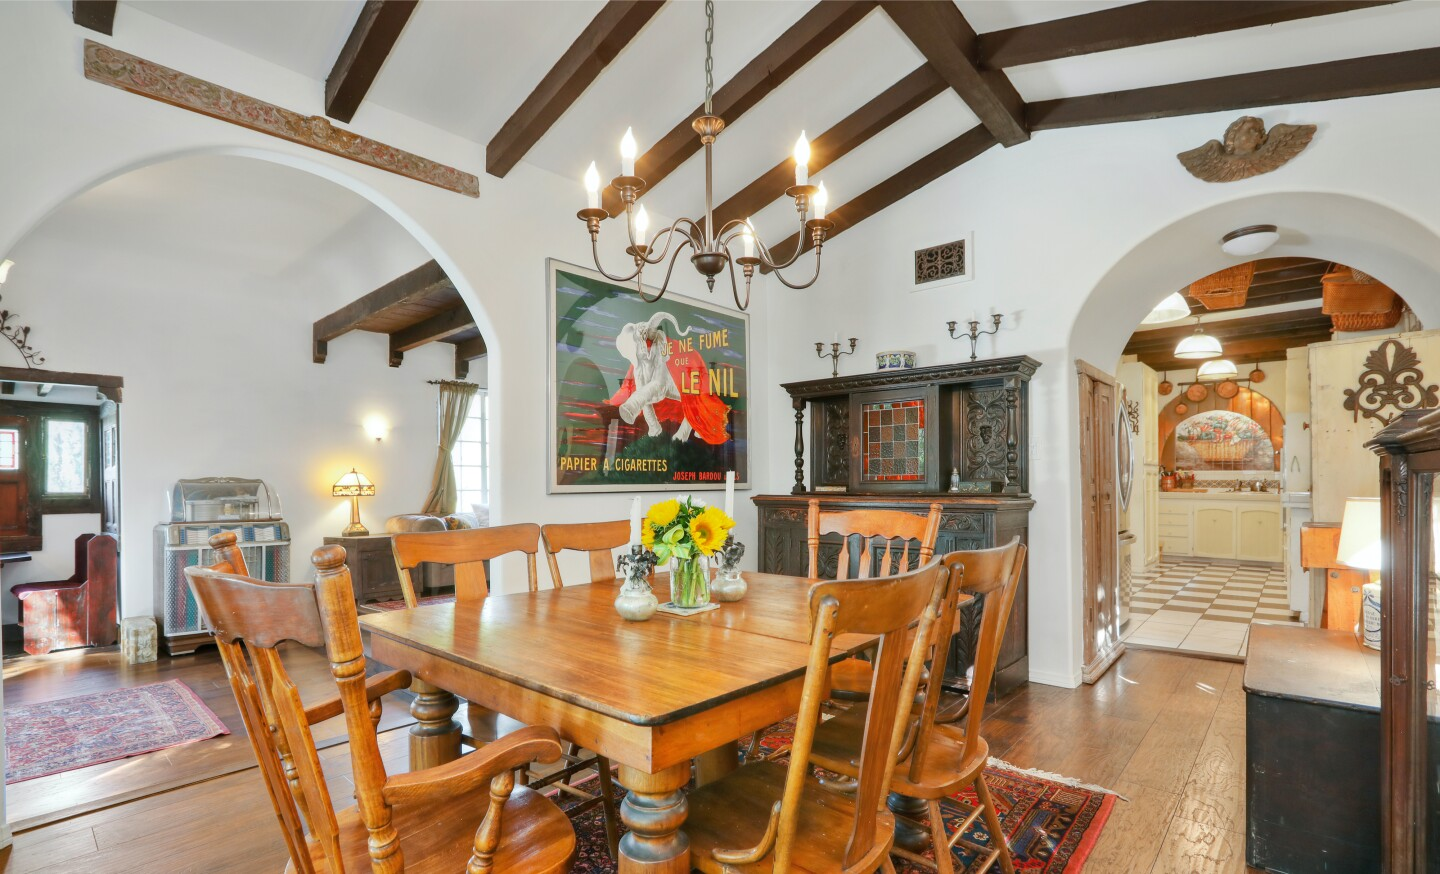 Built in 1928, the charming abode stays in touch with its Spanish roots with arched doorways, beamed ceilings and Saltillo tile.